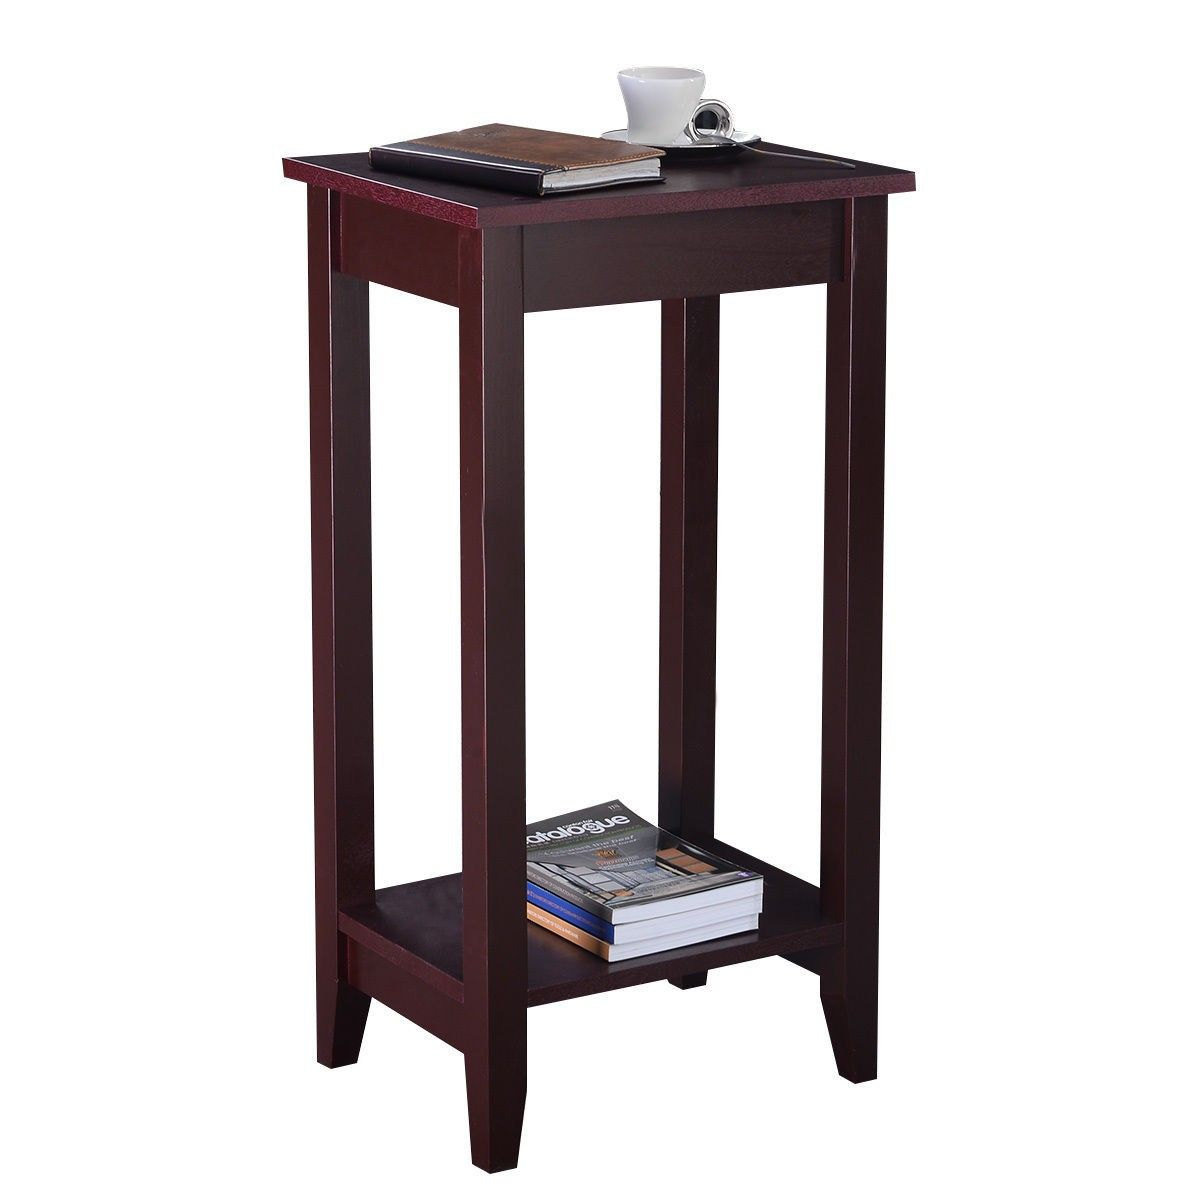 Tall Wooden Sofa End Table Side Table In 2020 Tall End Tables Wood End Tables End Tables